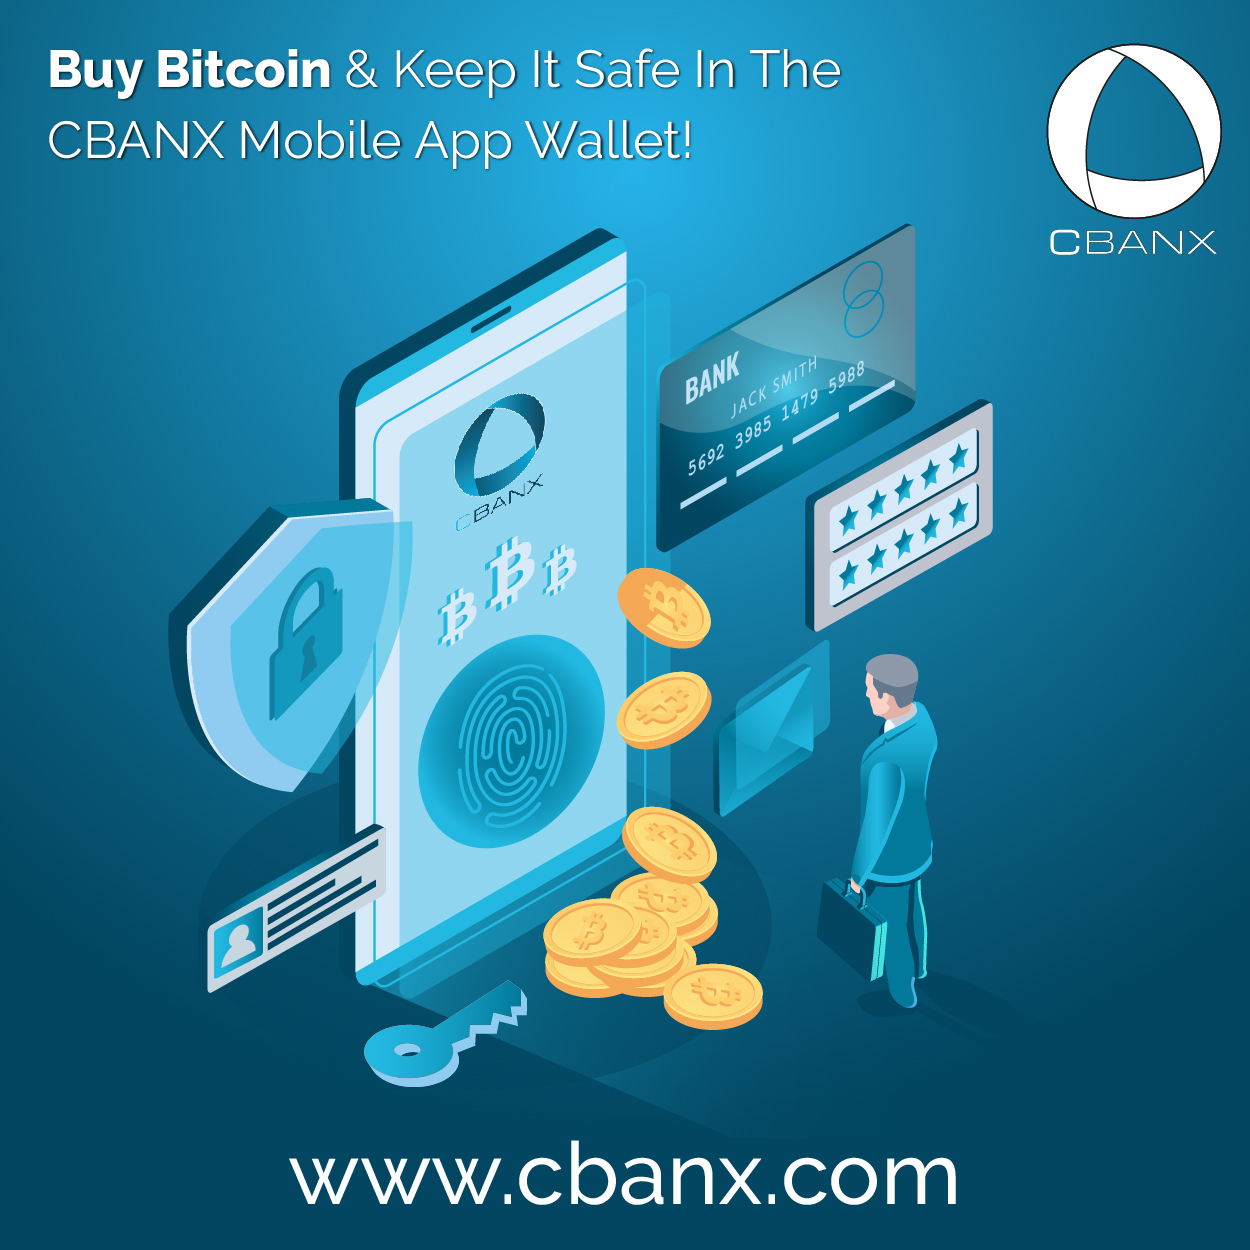 Buy Bitcoin & Keep It Safe In The CBANX Mobile App Wallet!